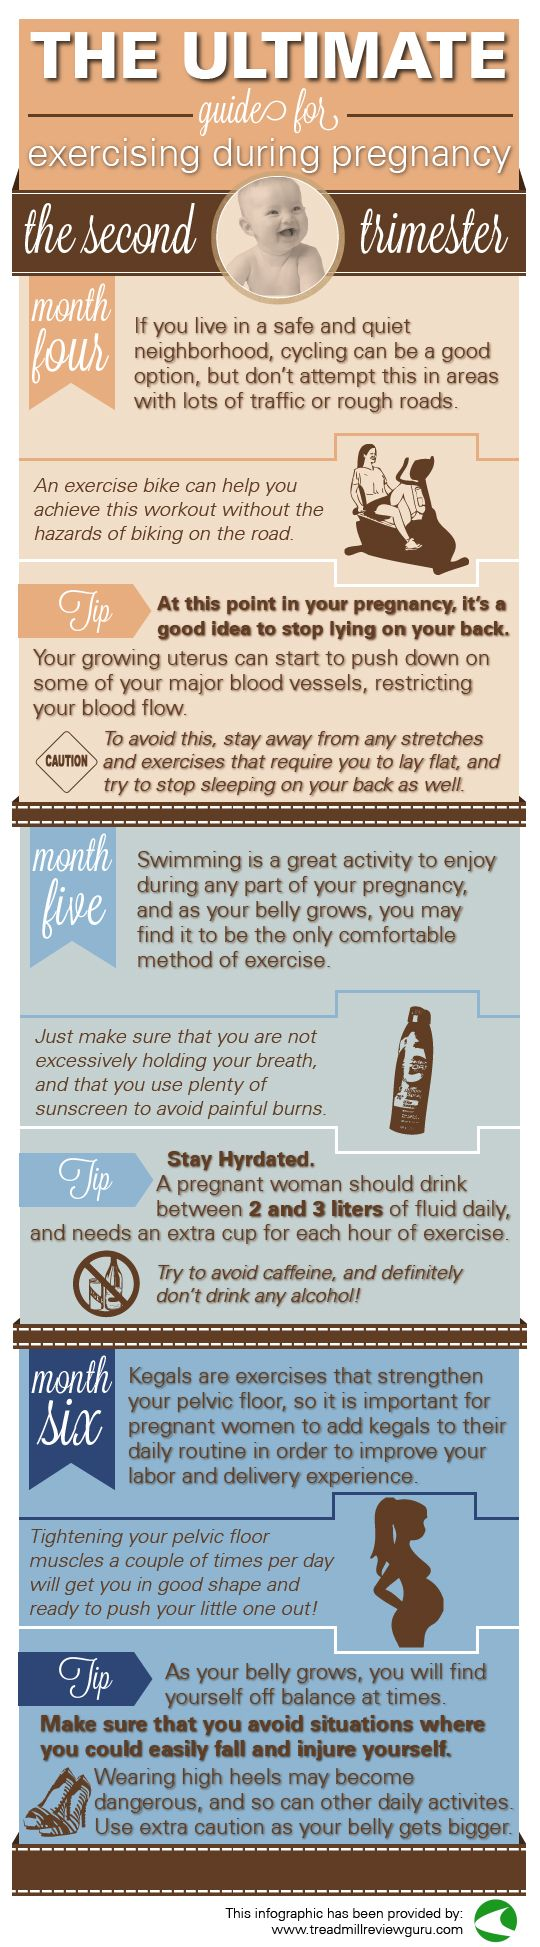 An awesome infographic highlighting workouts that should be done during the 2nd trimester of pregnancy!